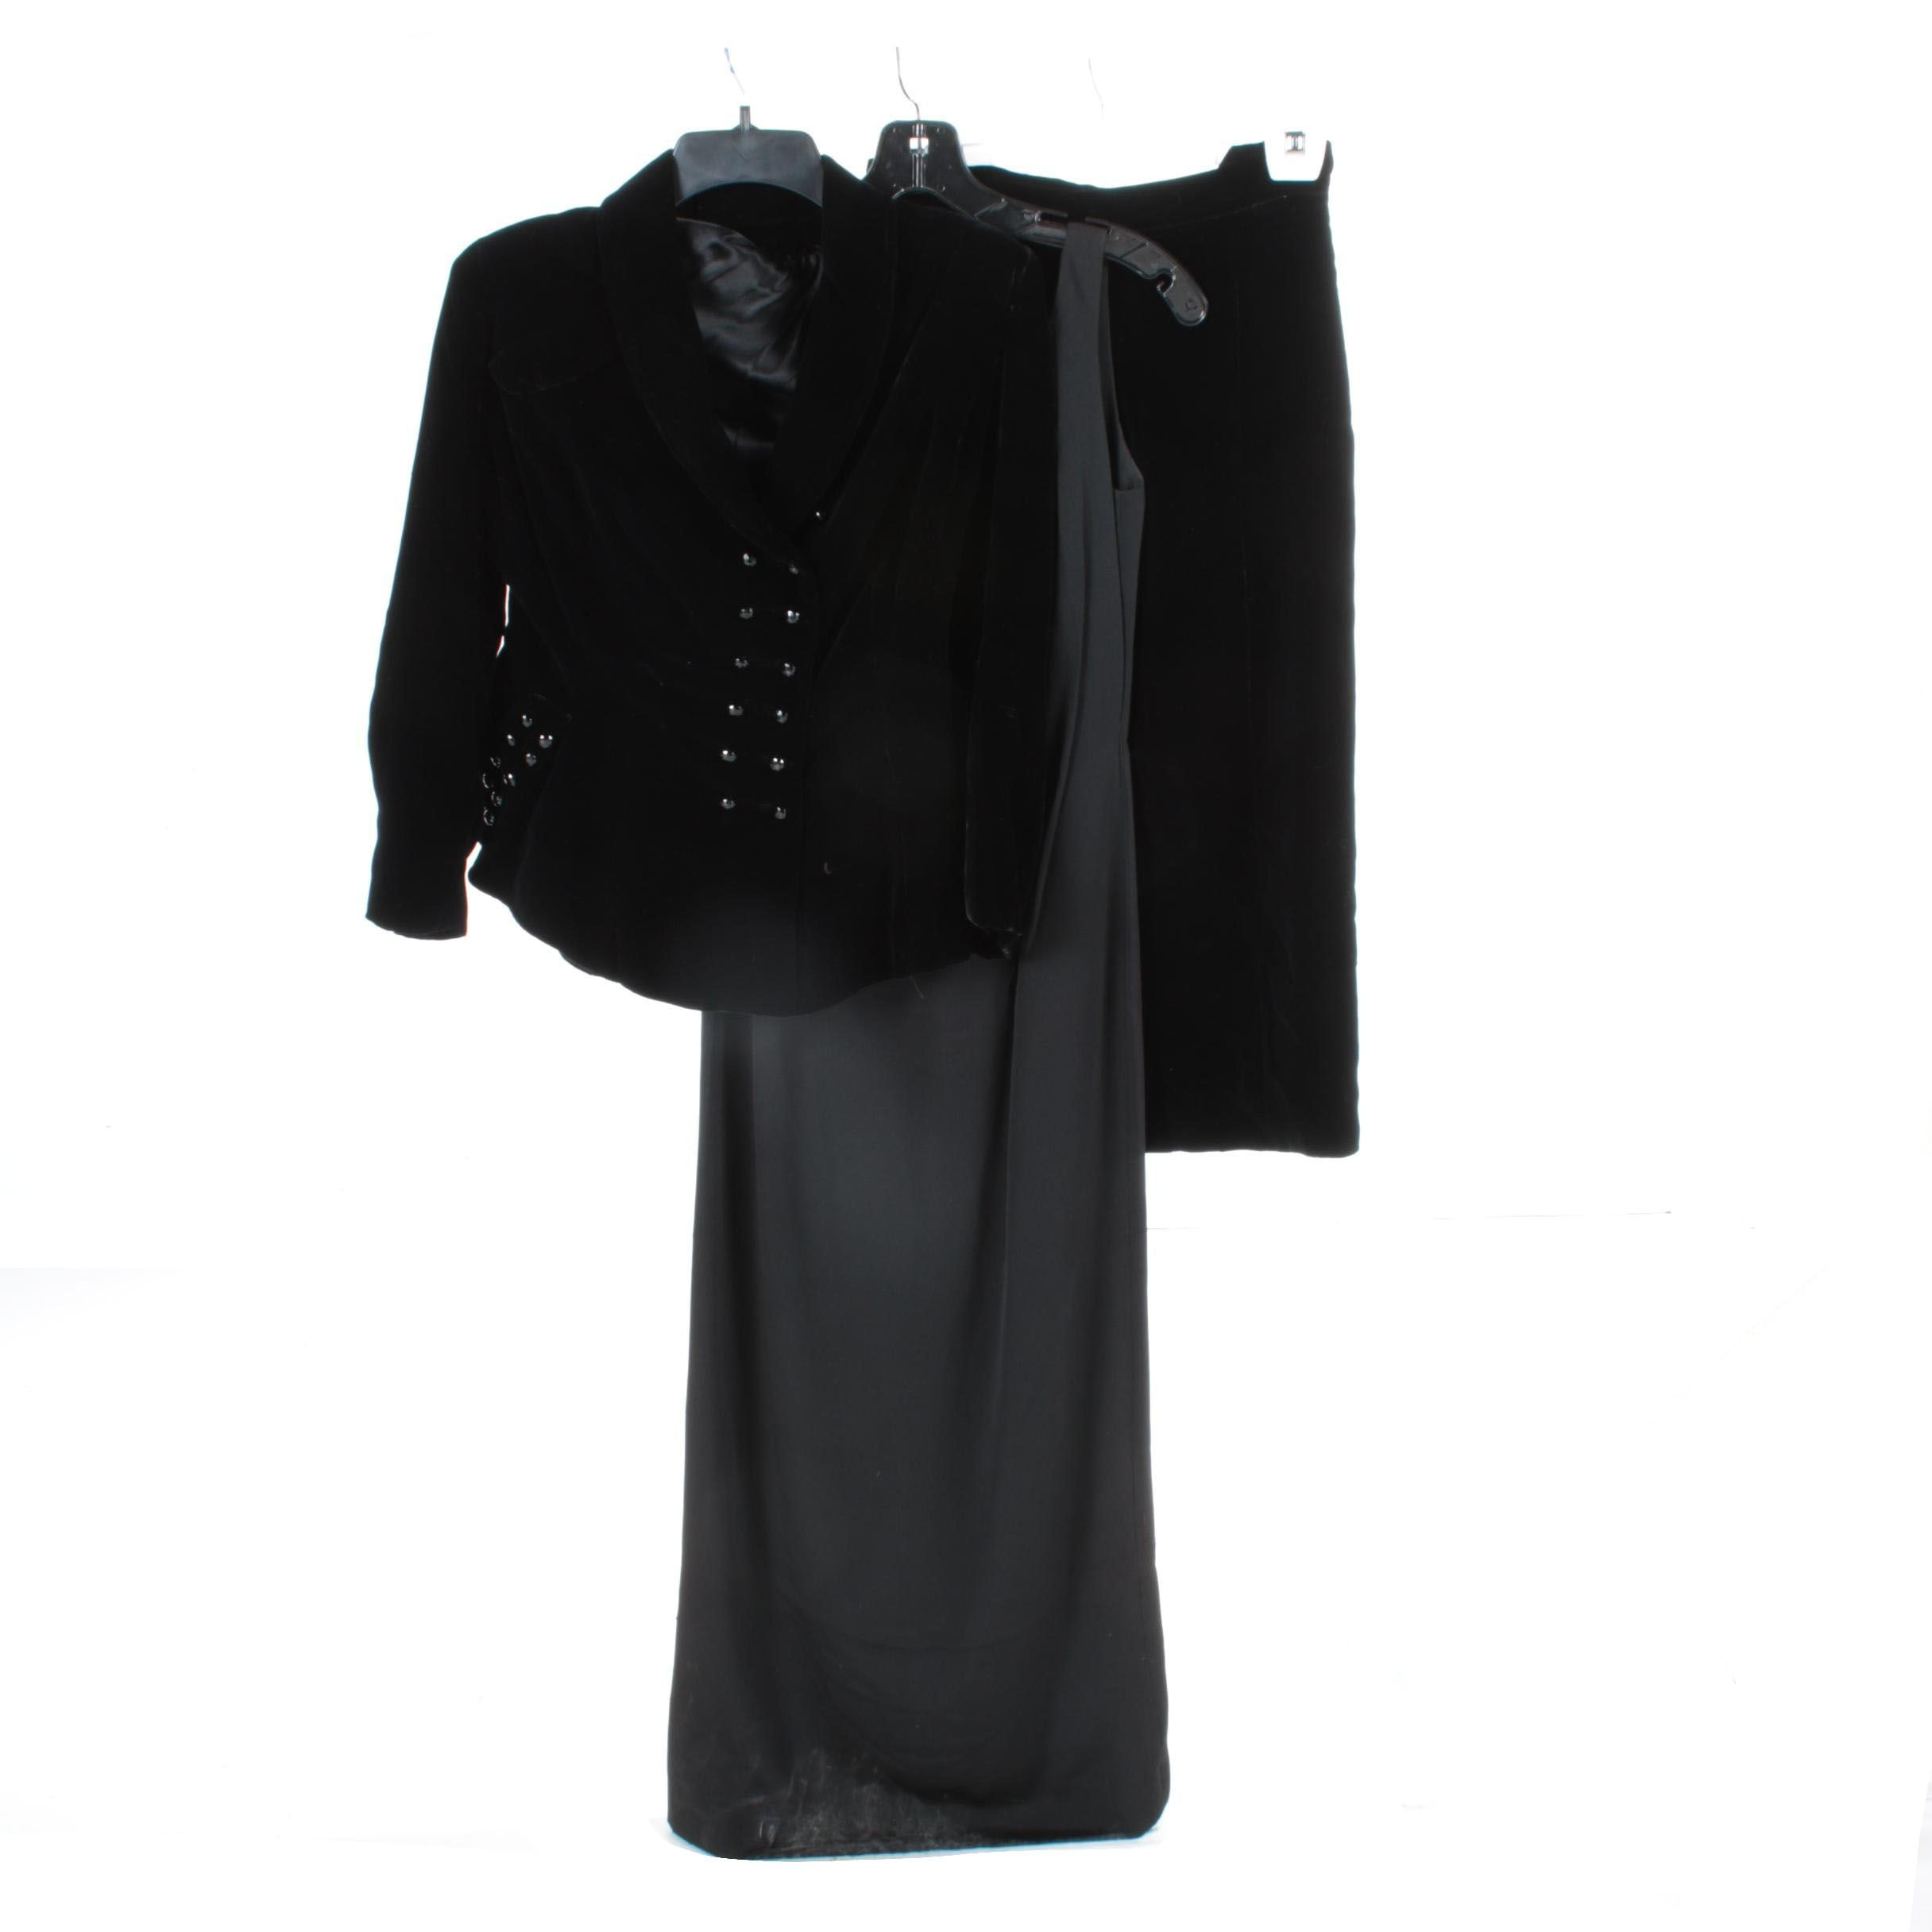 Women's Dress and Skirt Suit